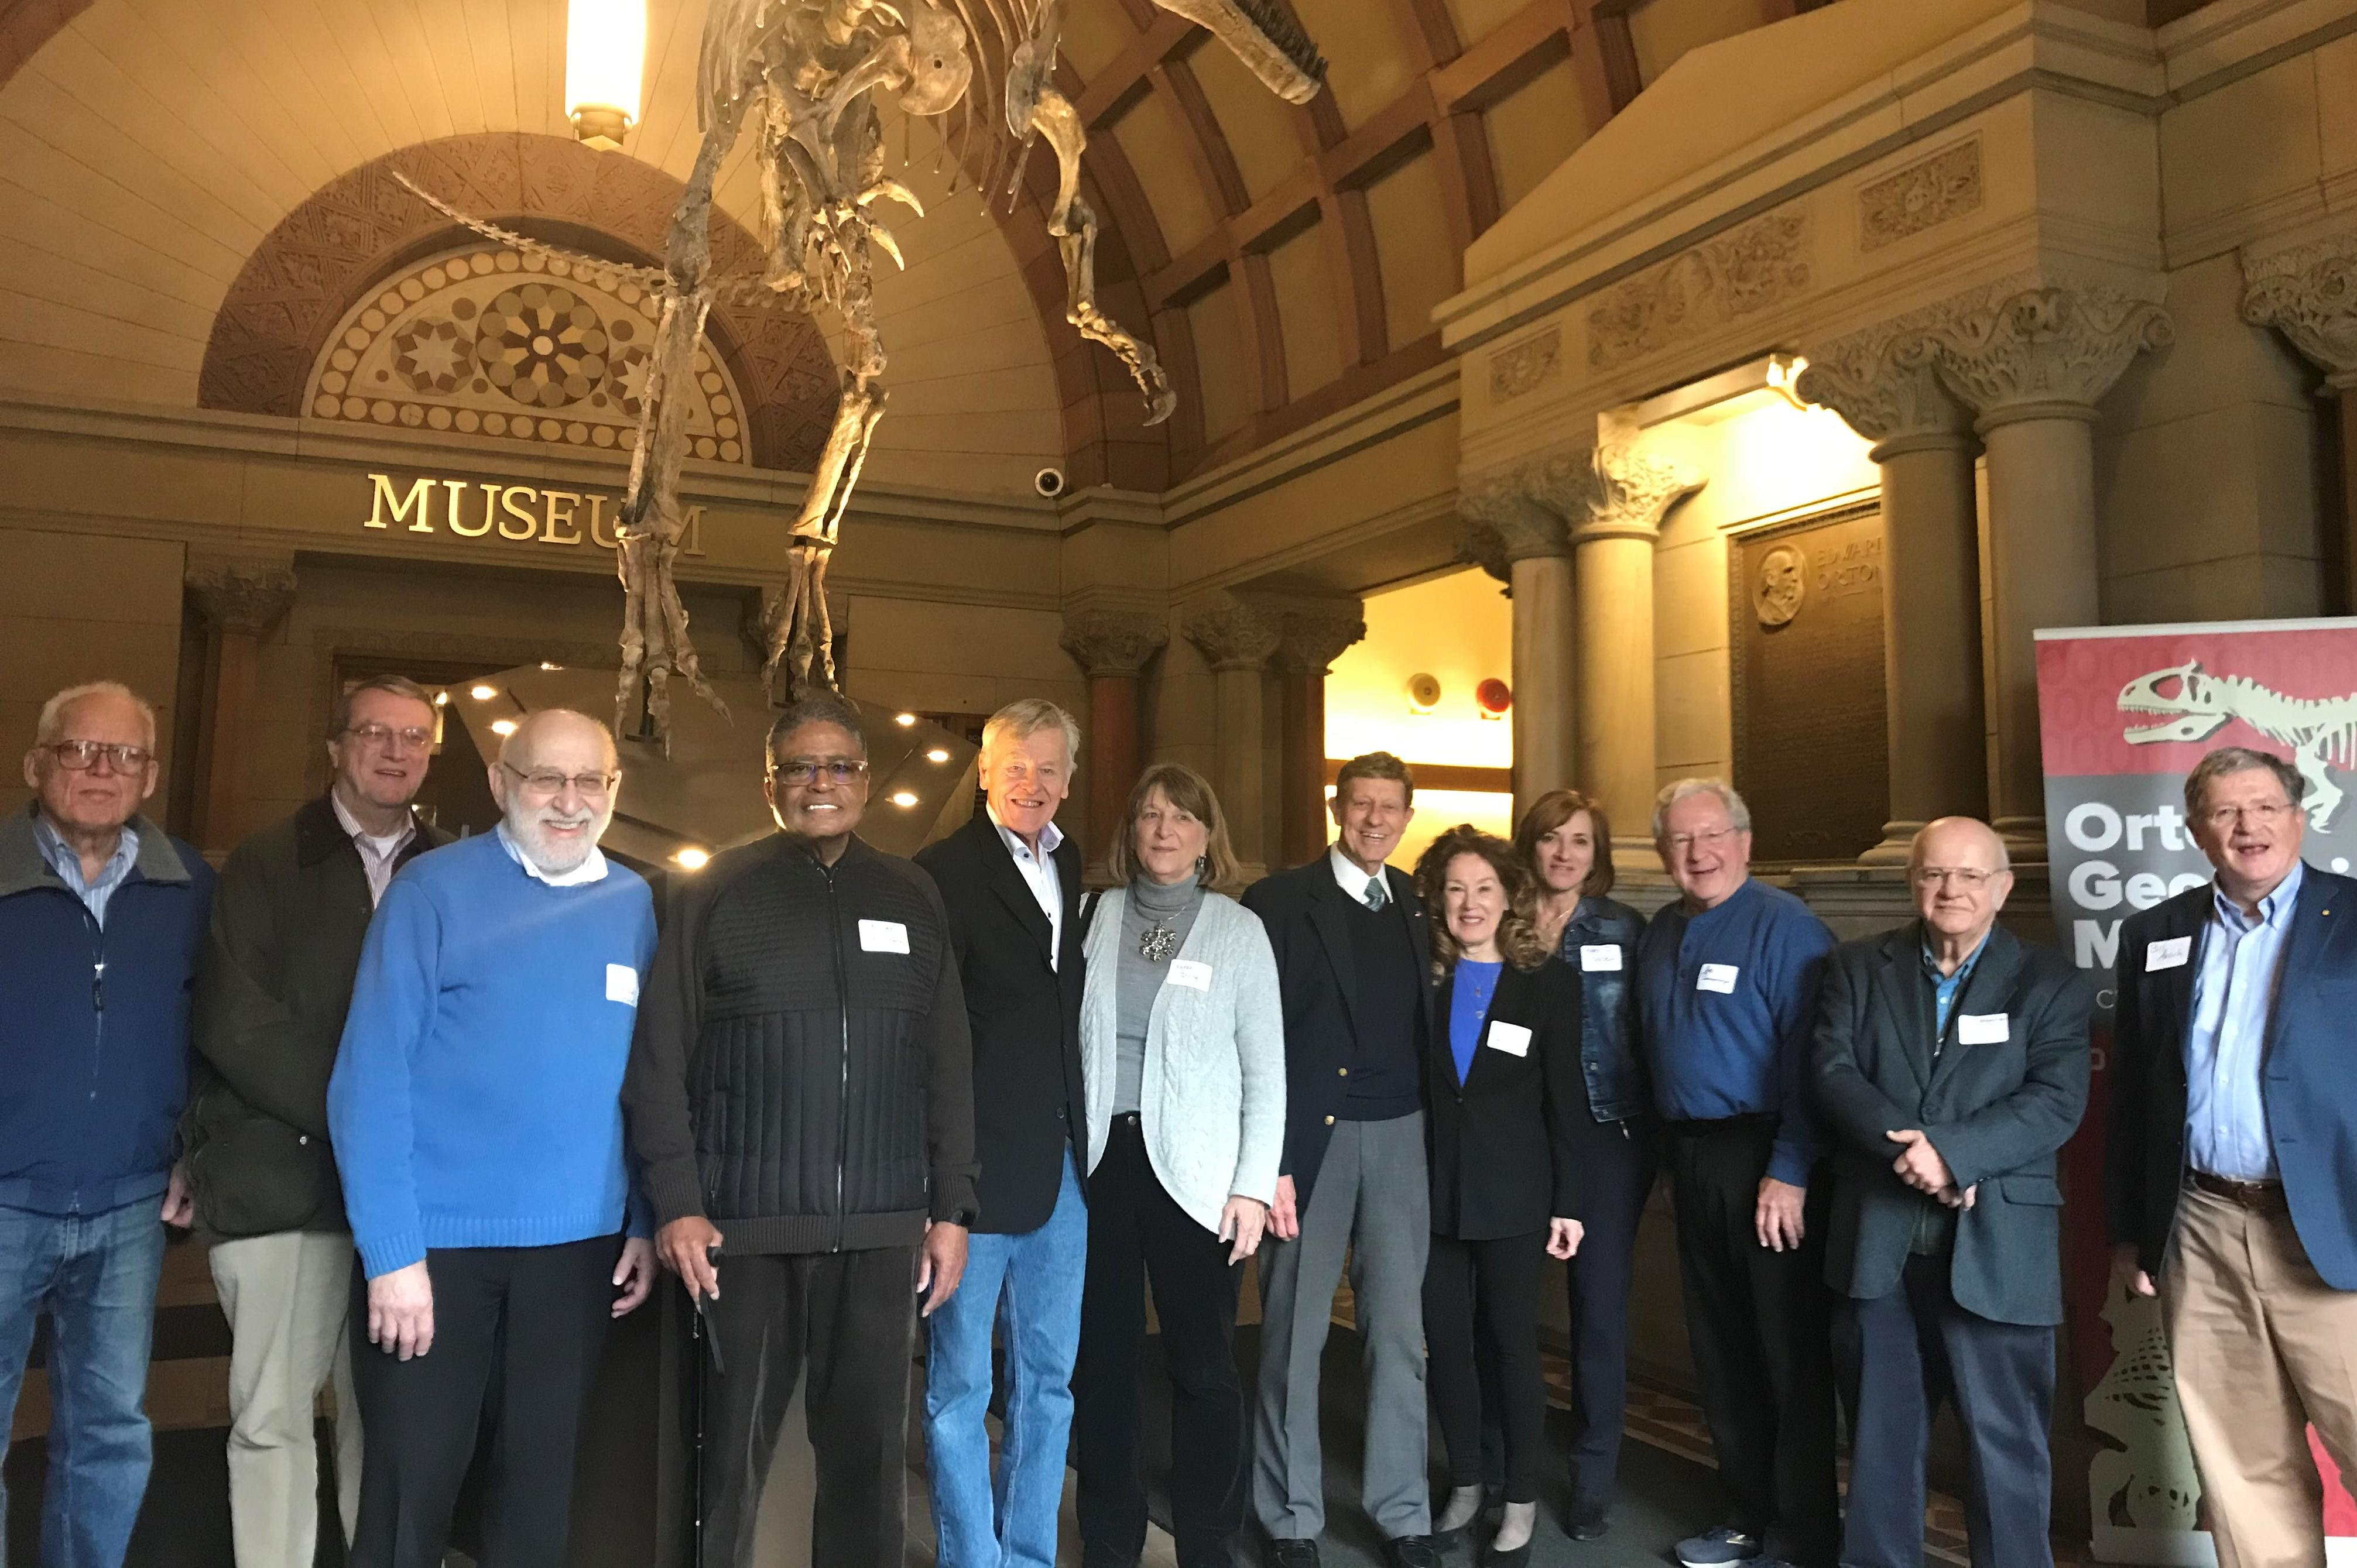 Emeritus Academy members gathered at a museum. Standing in front of a dinosaur skeleton.